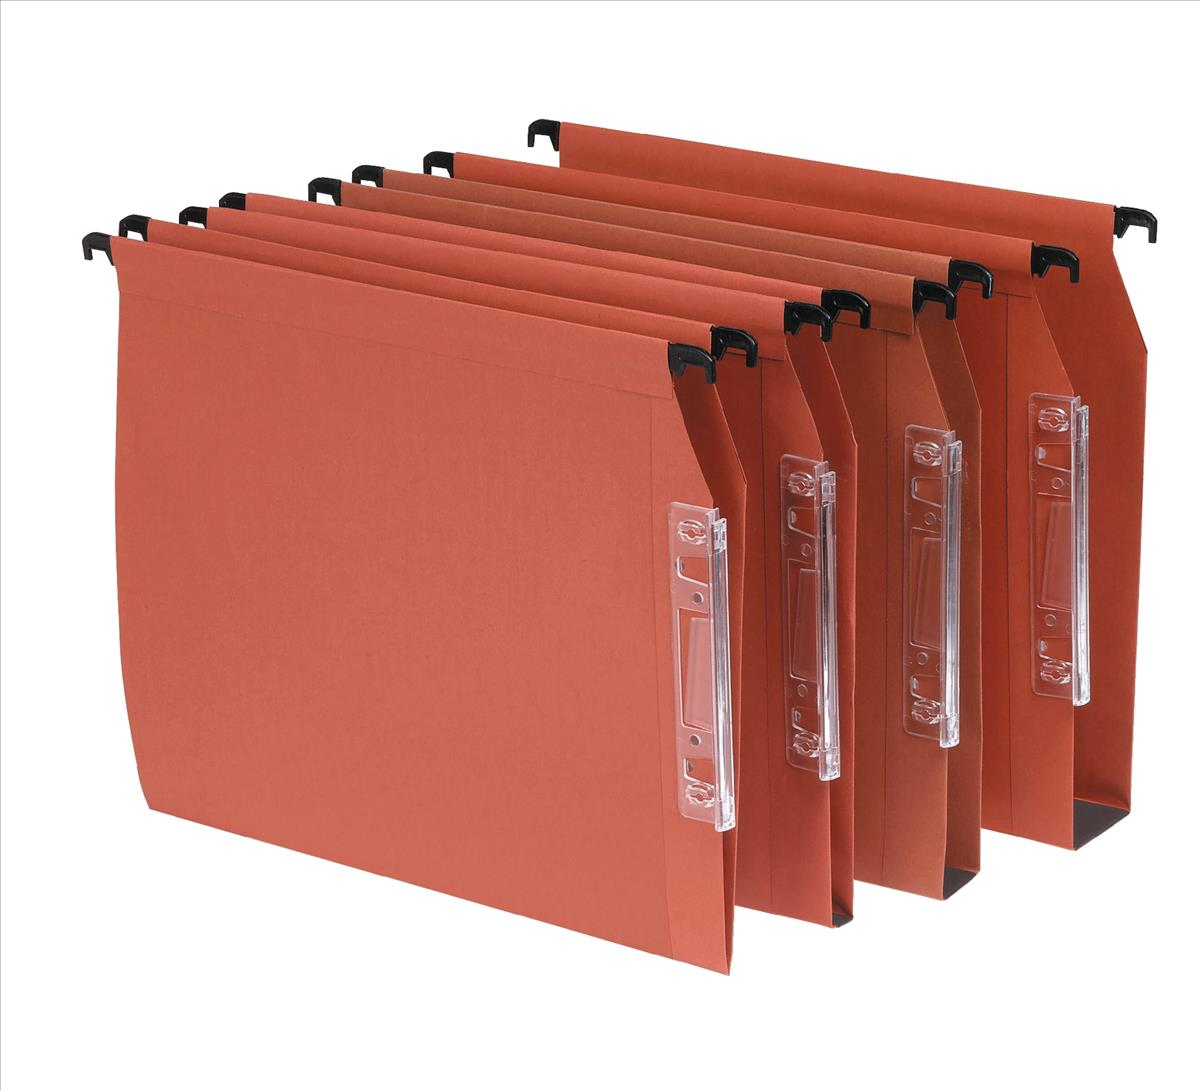 Image for Bantex Linking Lateral File Kraft 220gsm Square-base 50mm Capacity W330mm Orange Ref 100330745 [Pack 25]